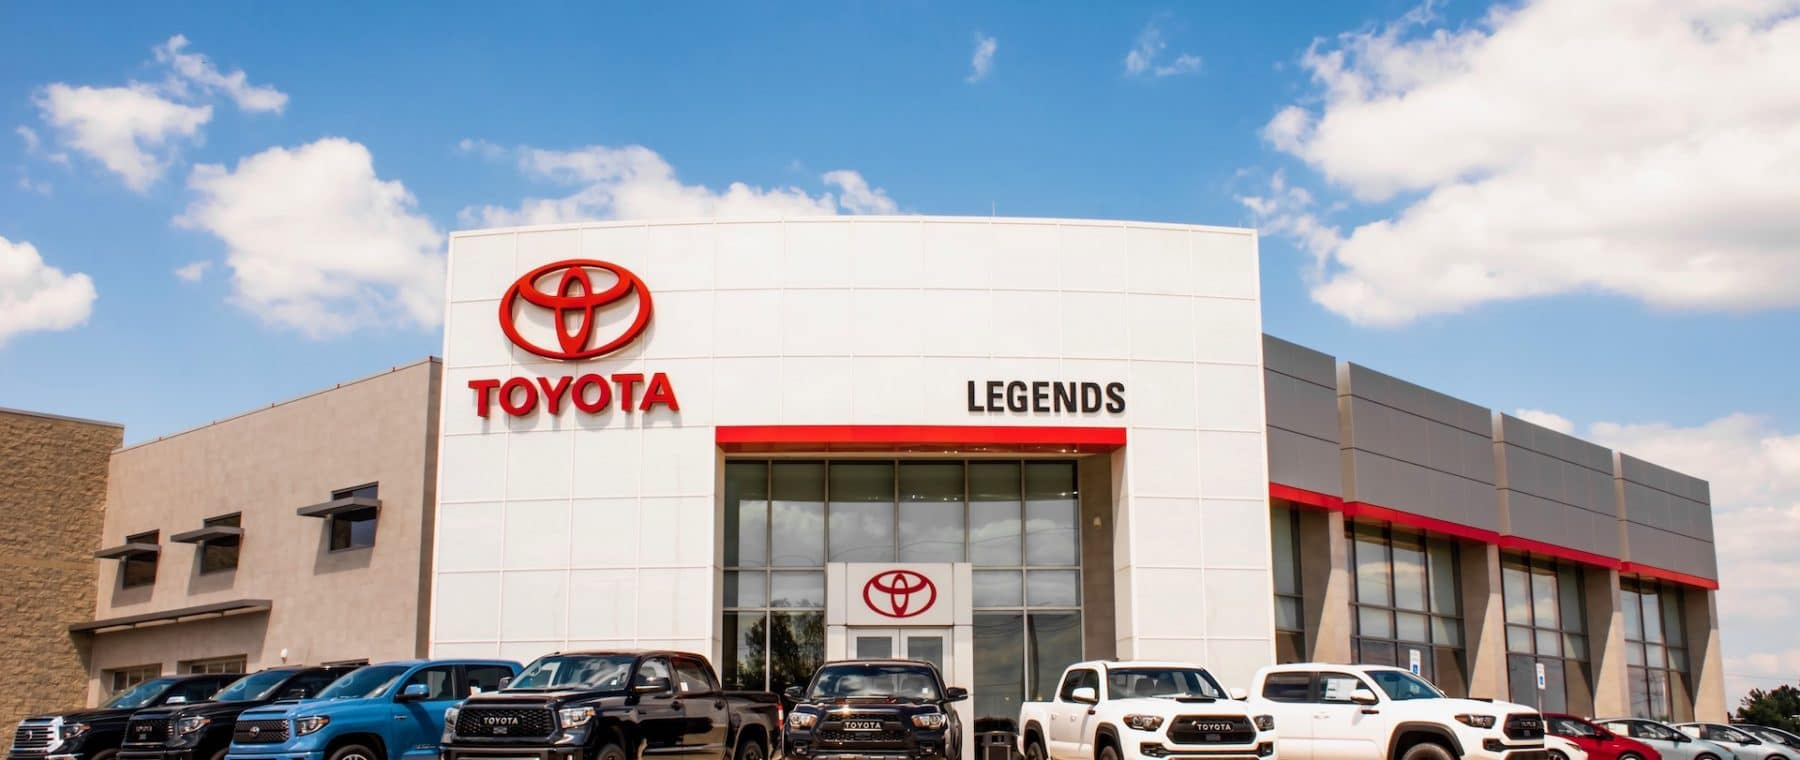 Legends Toyota Toyota Dealership In Kansas City Ks